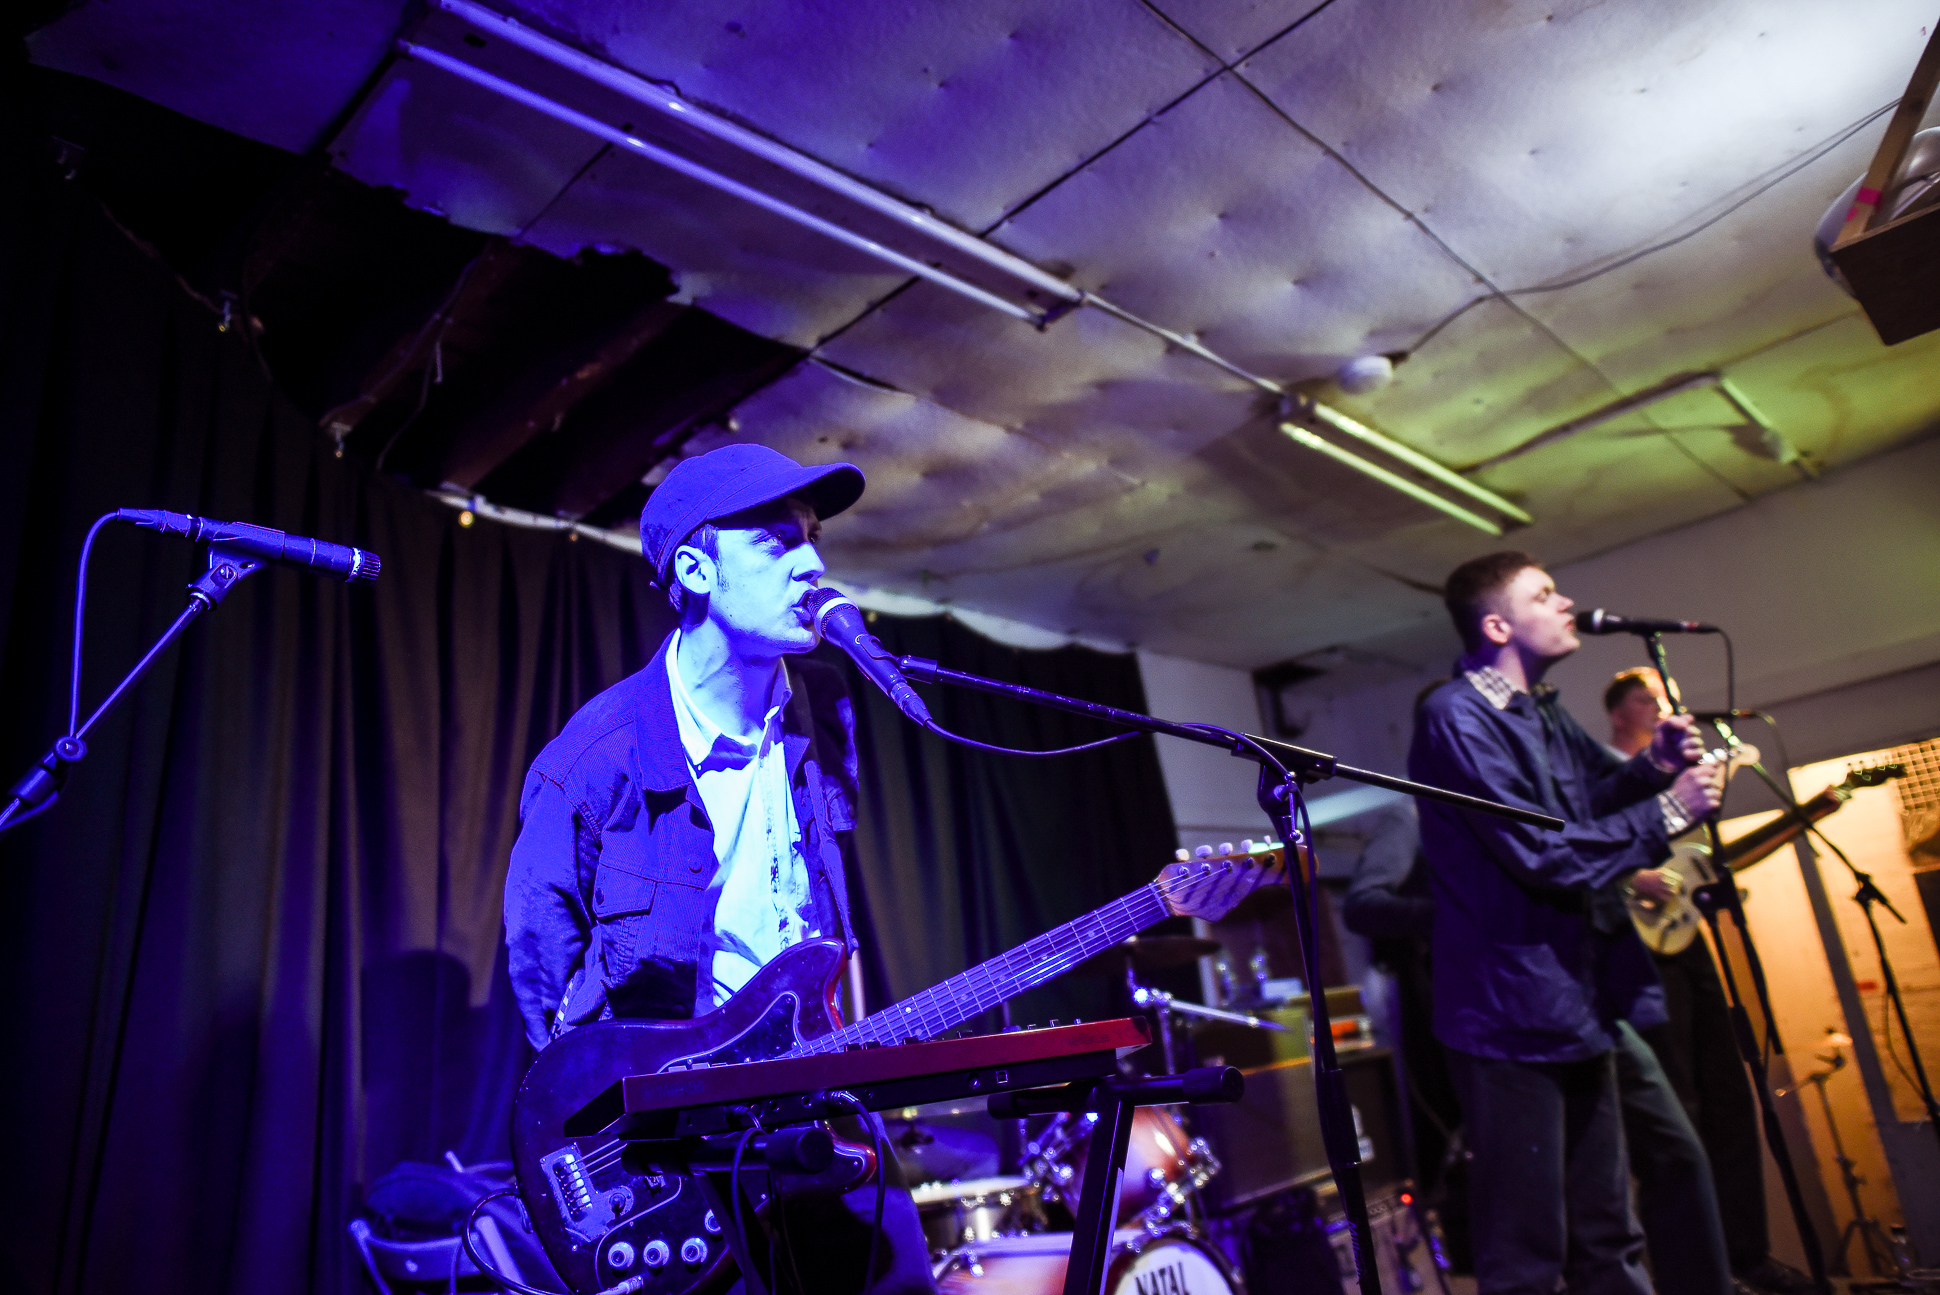 Live At Leeds 2019 - Hotel Lux-8.jpg